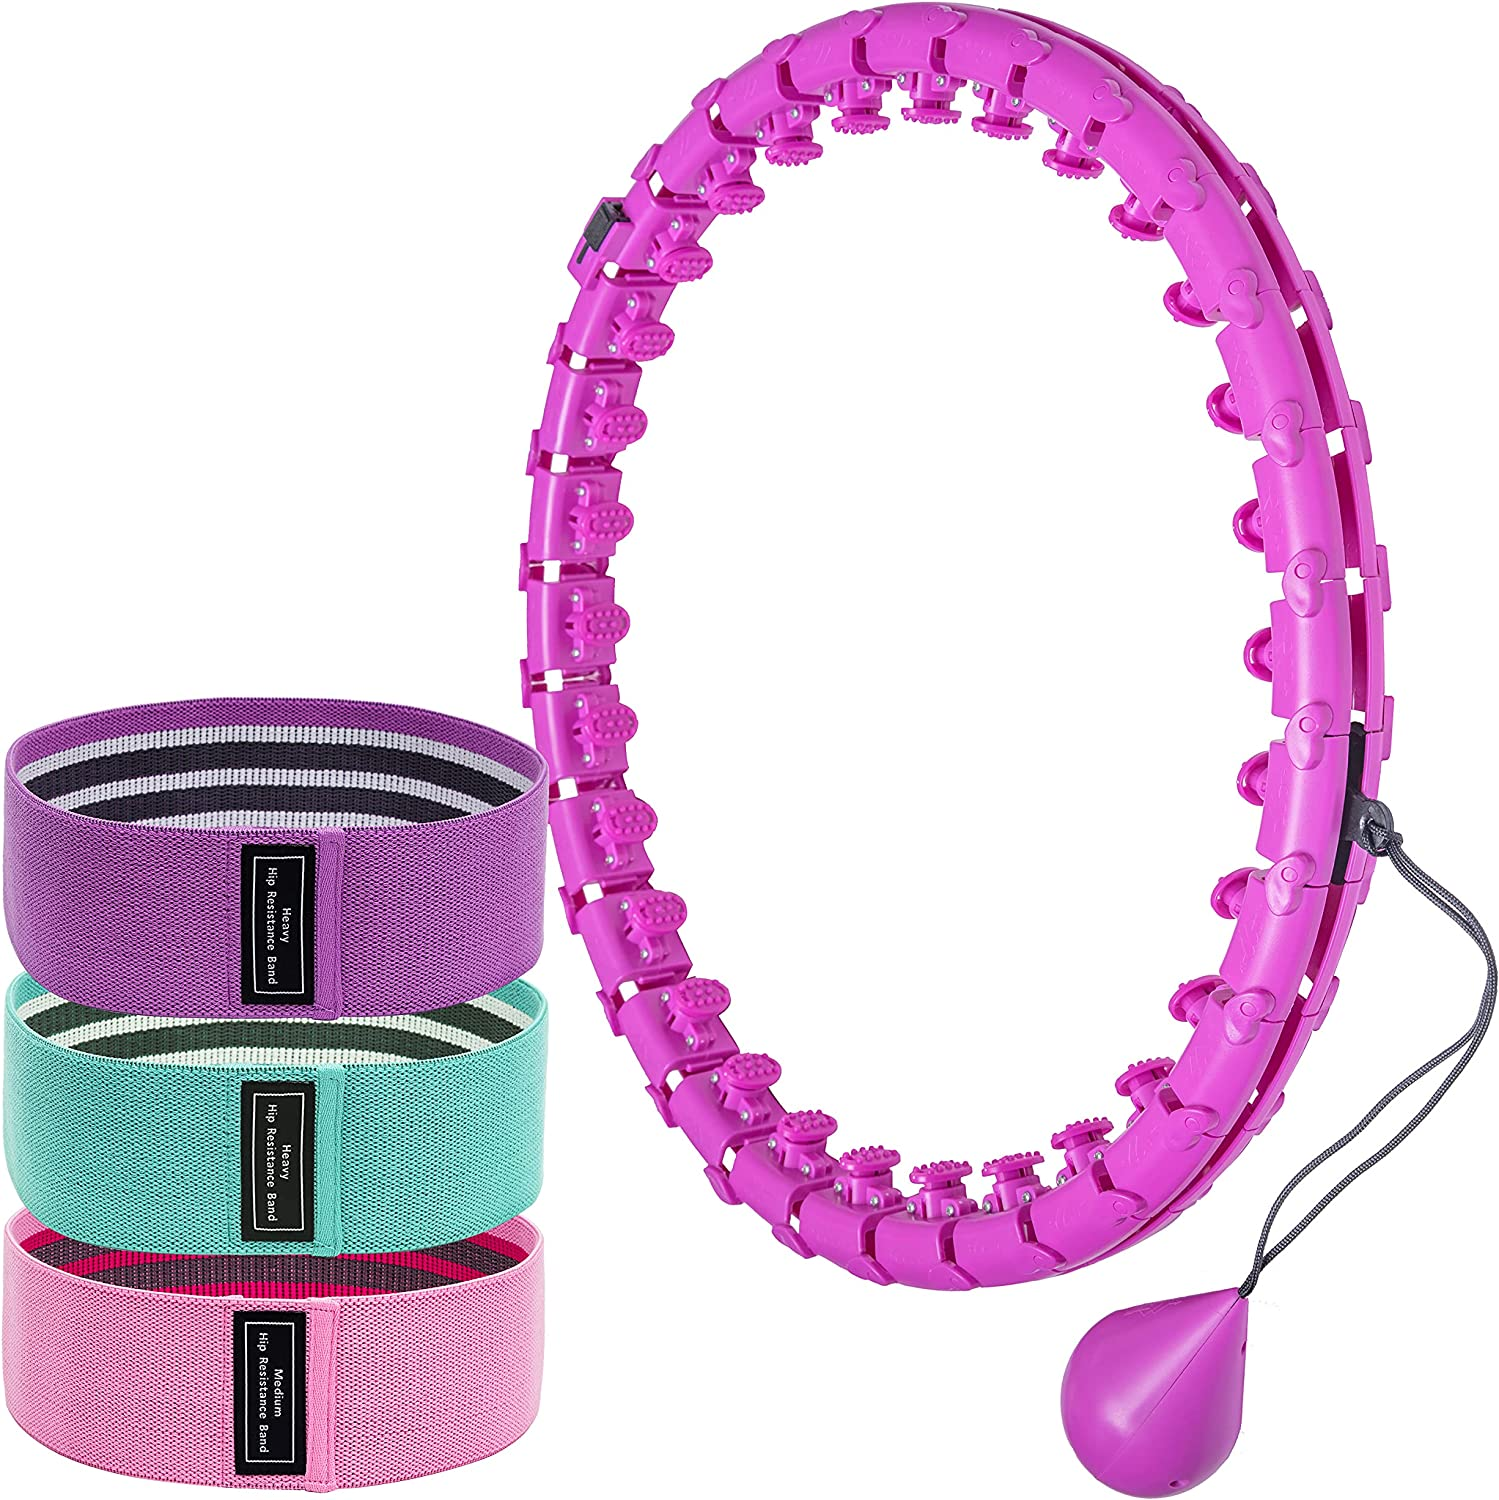 Limited price sale Intelligent Hula Online limited product Hoop– 30 Size Sections Detachable Adjustable